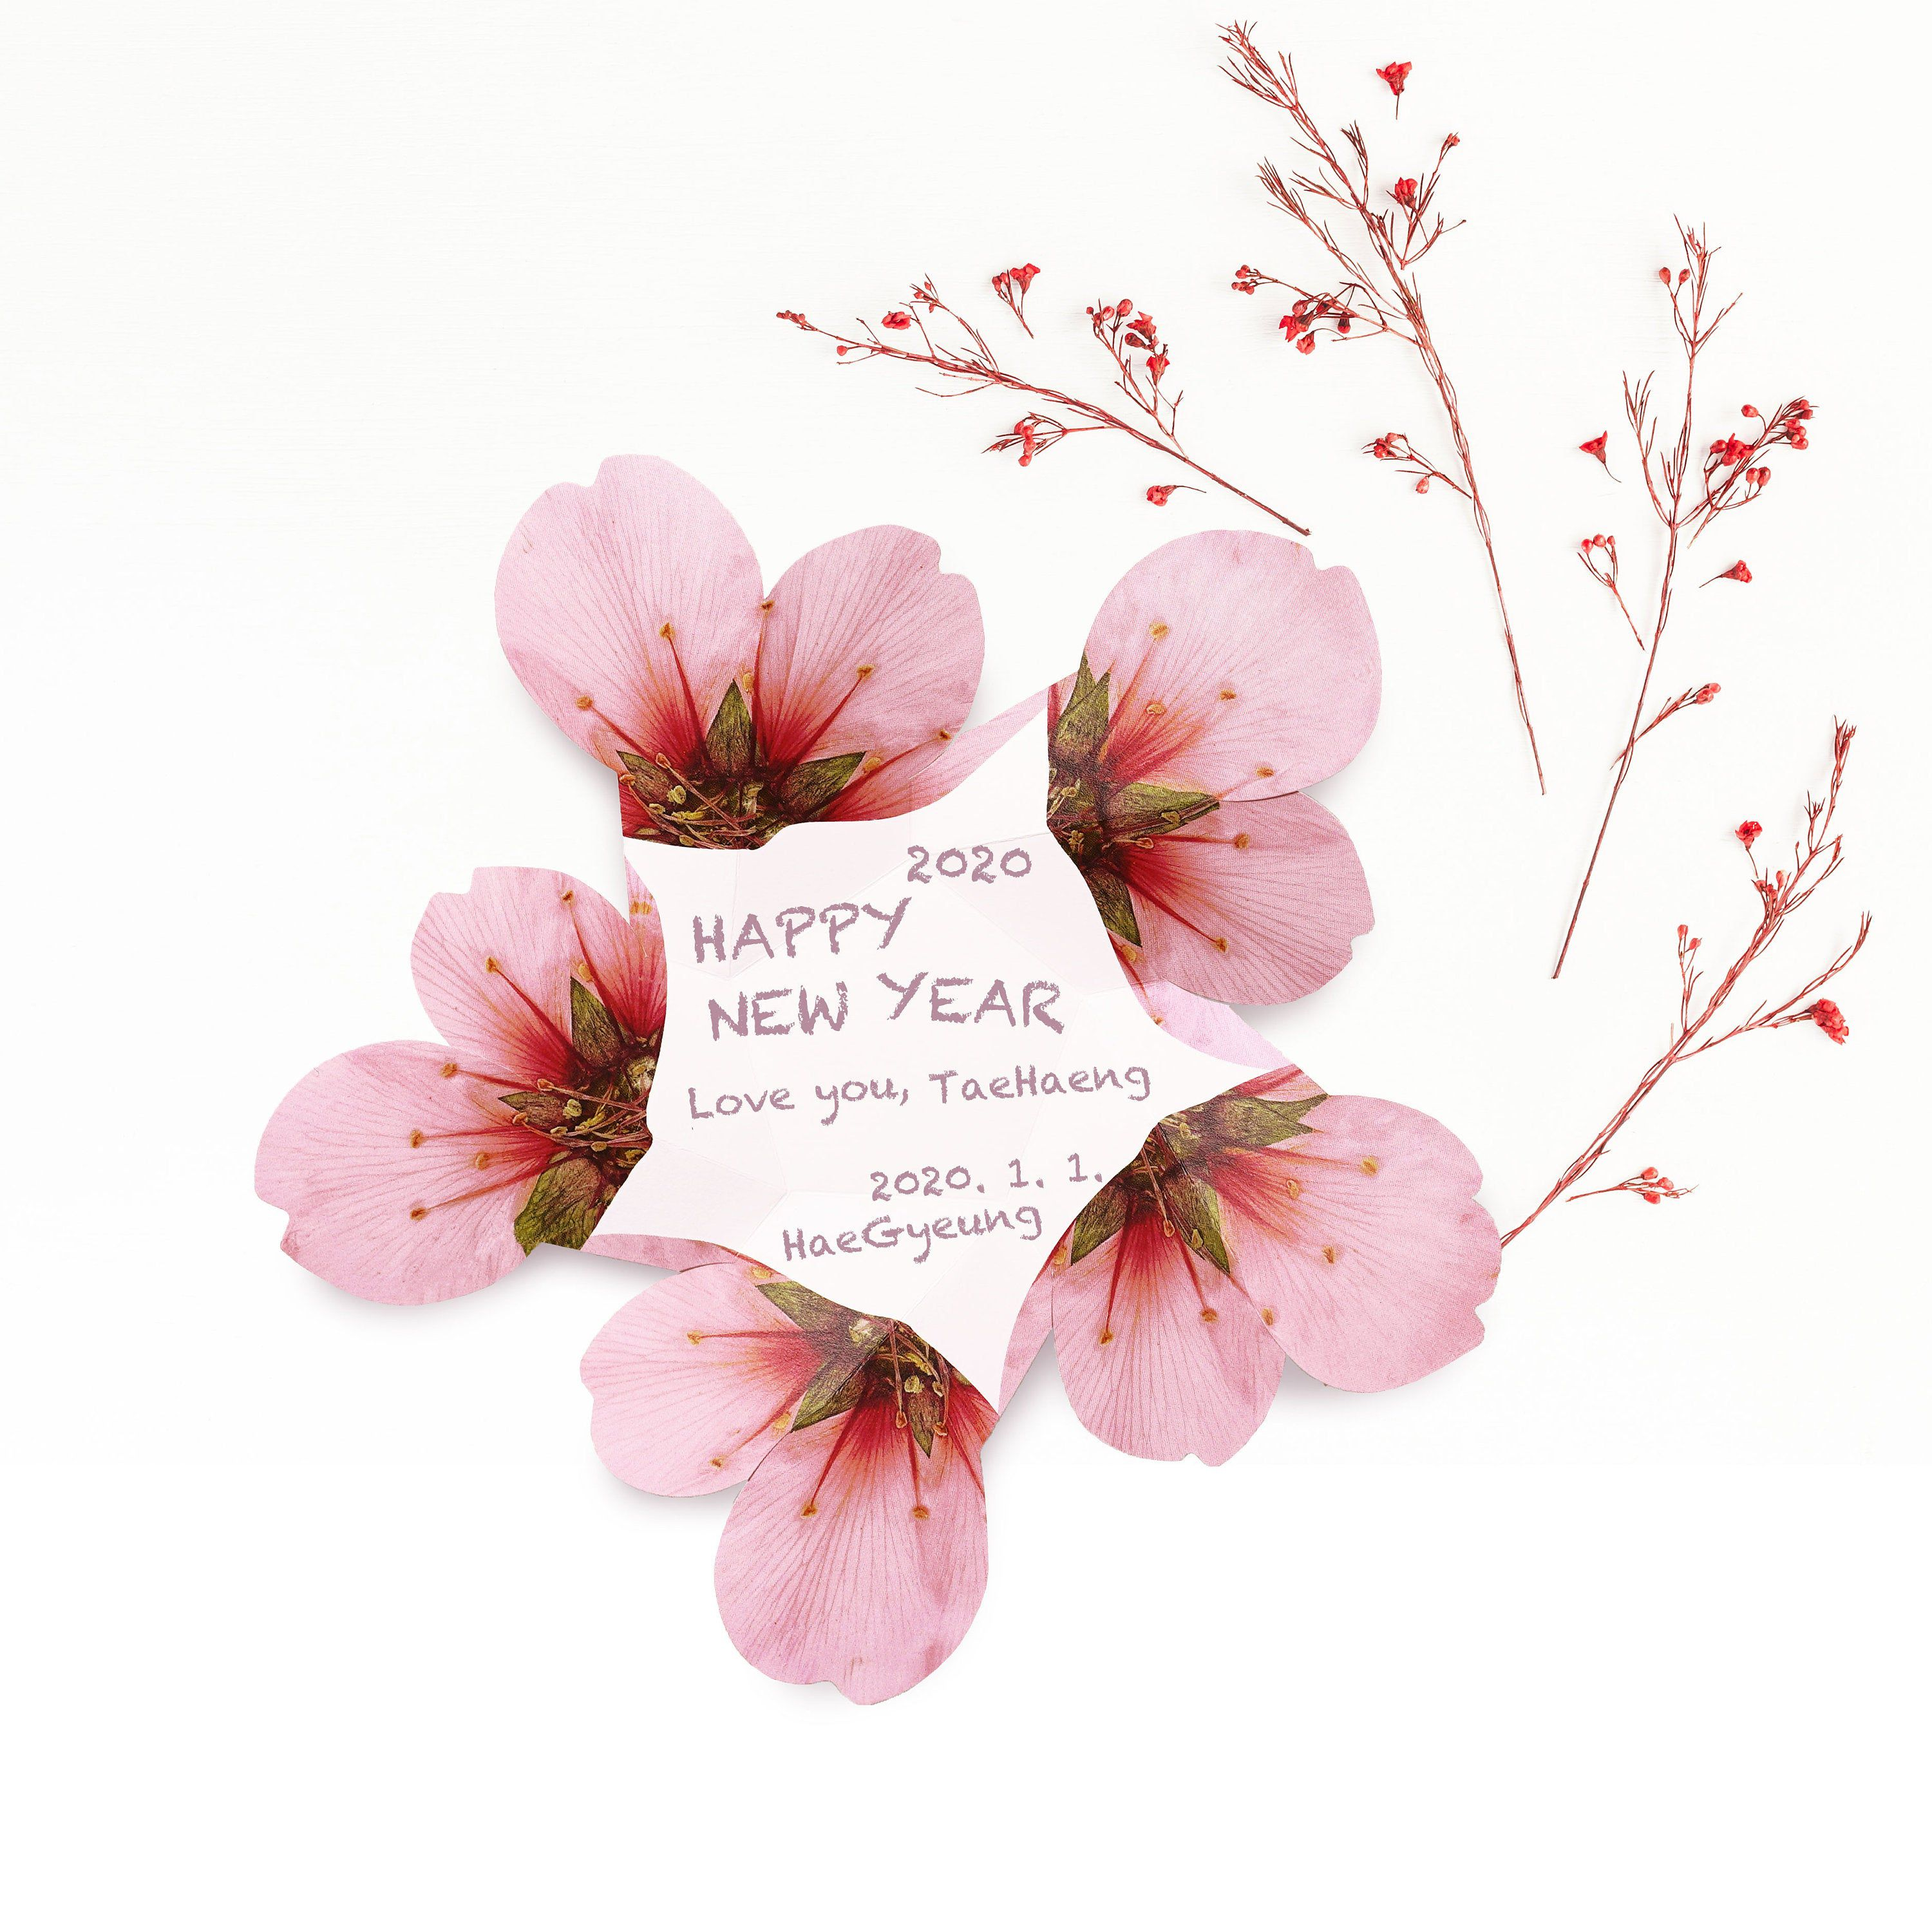 Pdf Template Almond Flower Pink Mother S Day Father S Day Flower Unique Card Greeting Card Birthday Card Pop Up Card Wedding Invitation In 2020 Birthday Card Pop Up Flower Cards Almond Flower